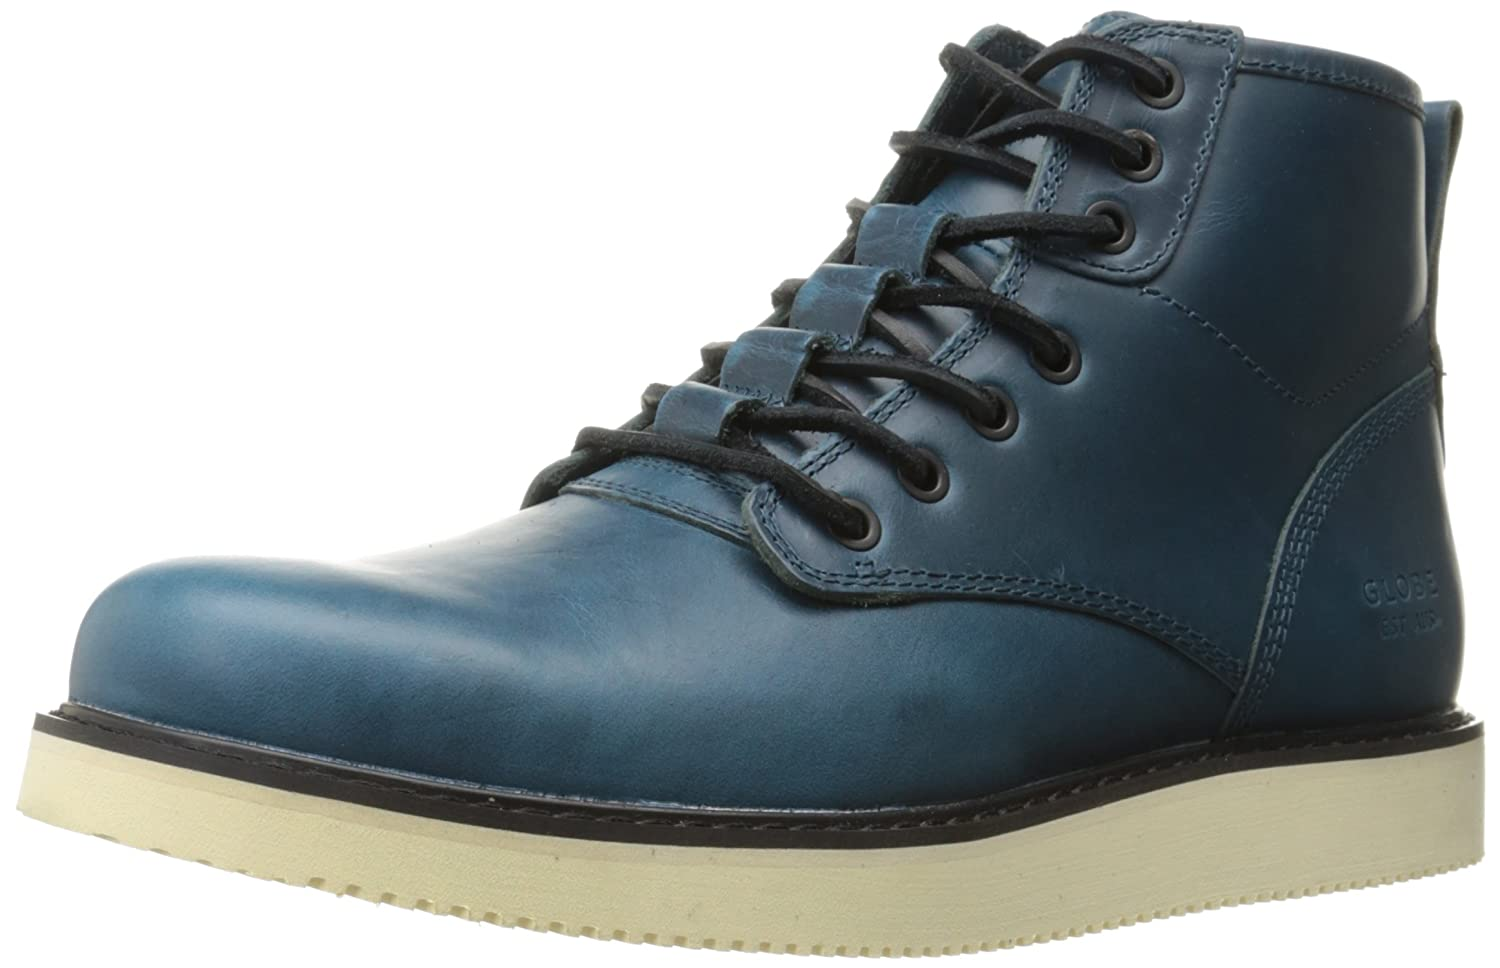 Globe Men's Nomad Sneaker Boot 9 D(M) US|Navy